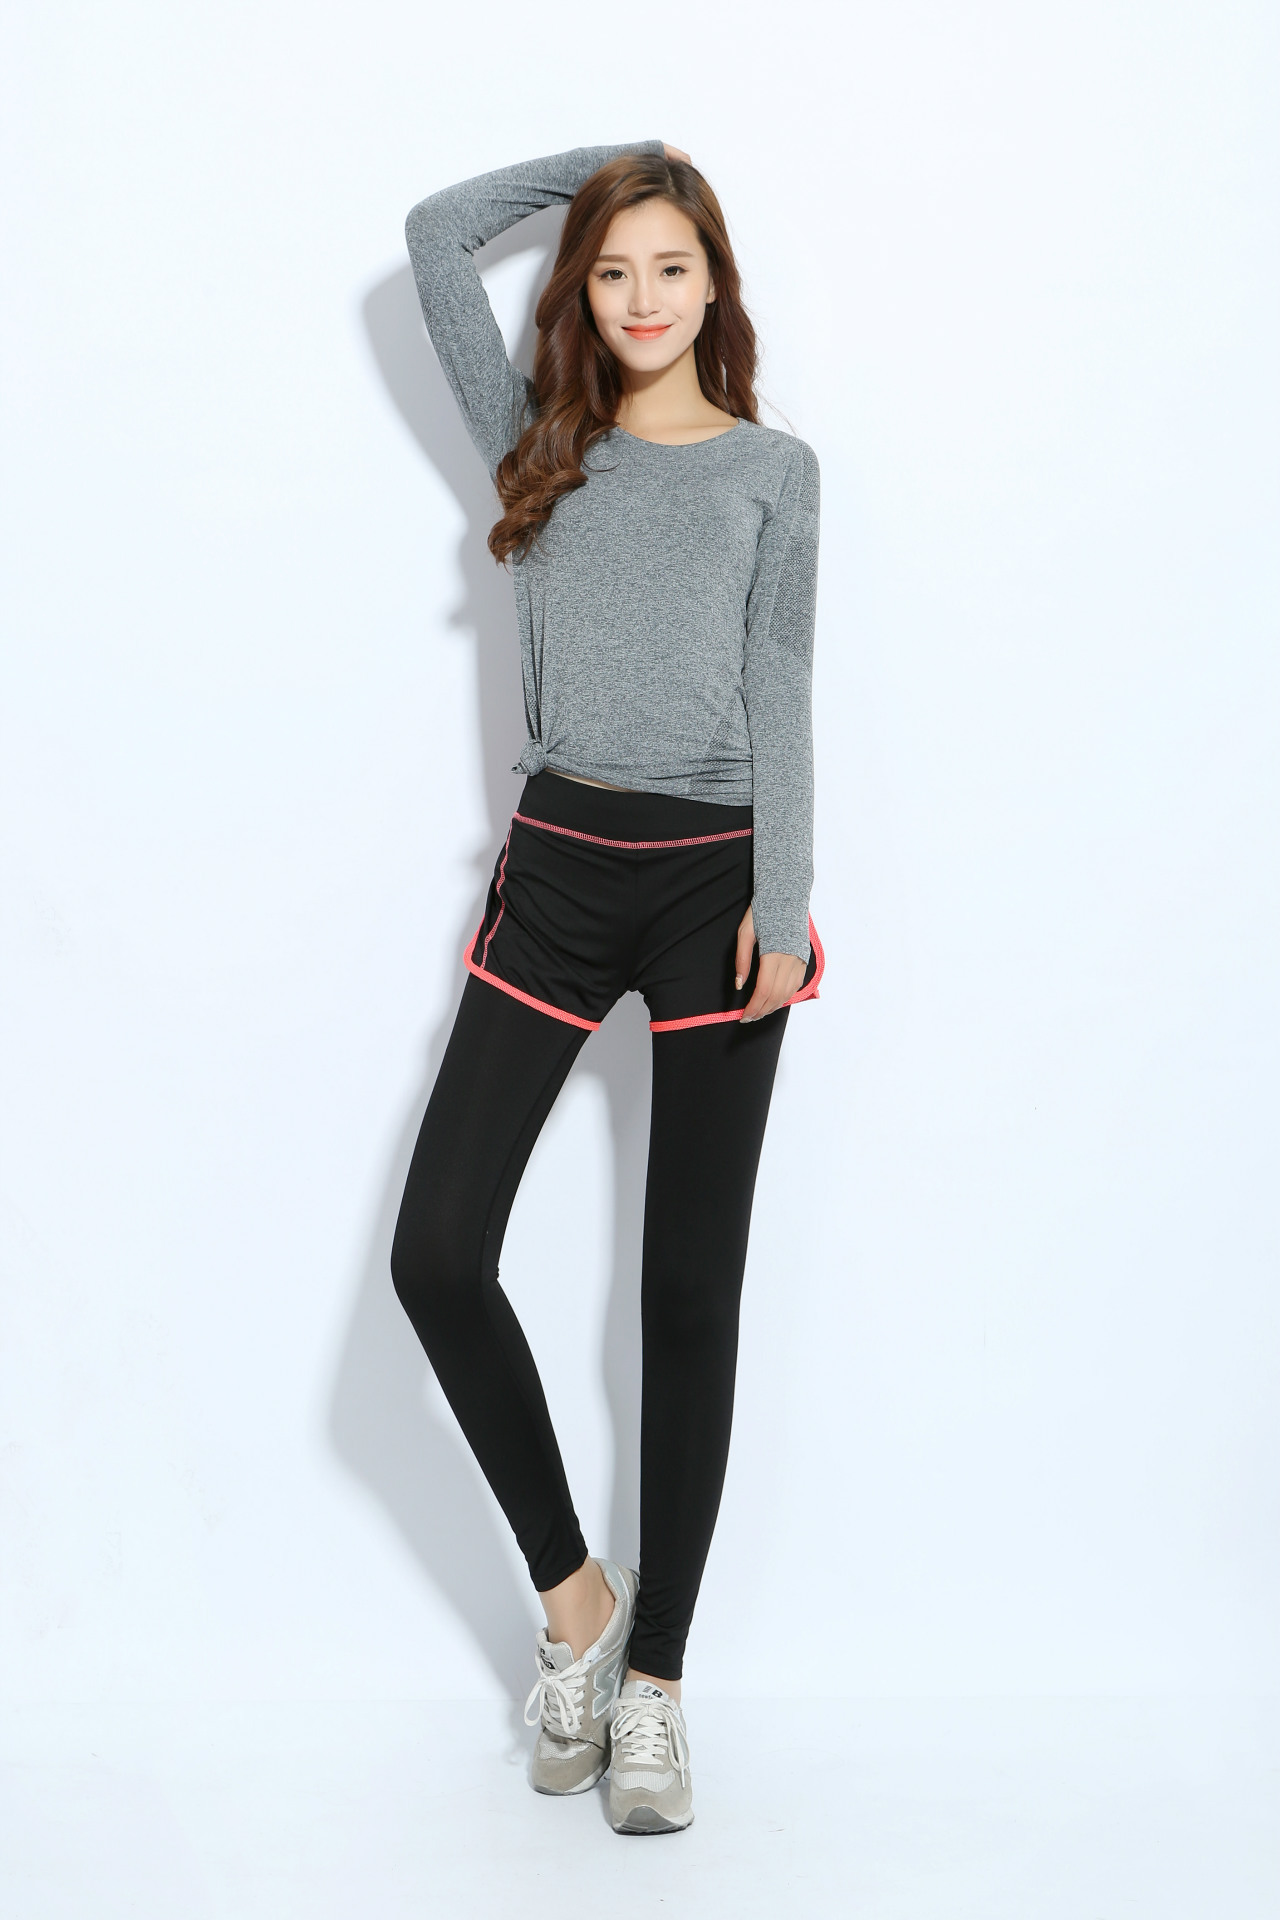 Enjoy free shipping and easy returns every day at Kohl's. Find great deals on Plus Size Workout Clothes at Kohl's today!